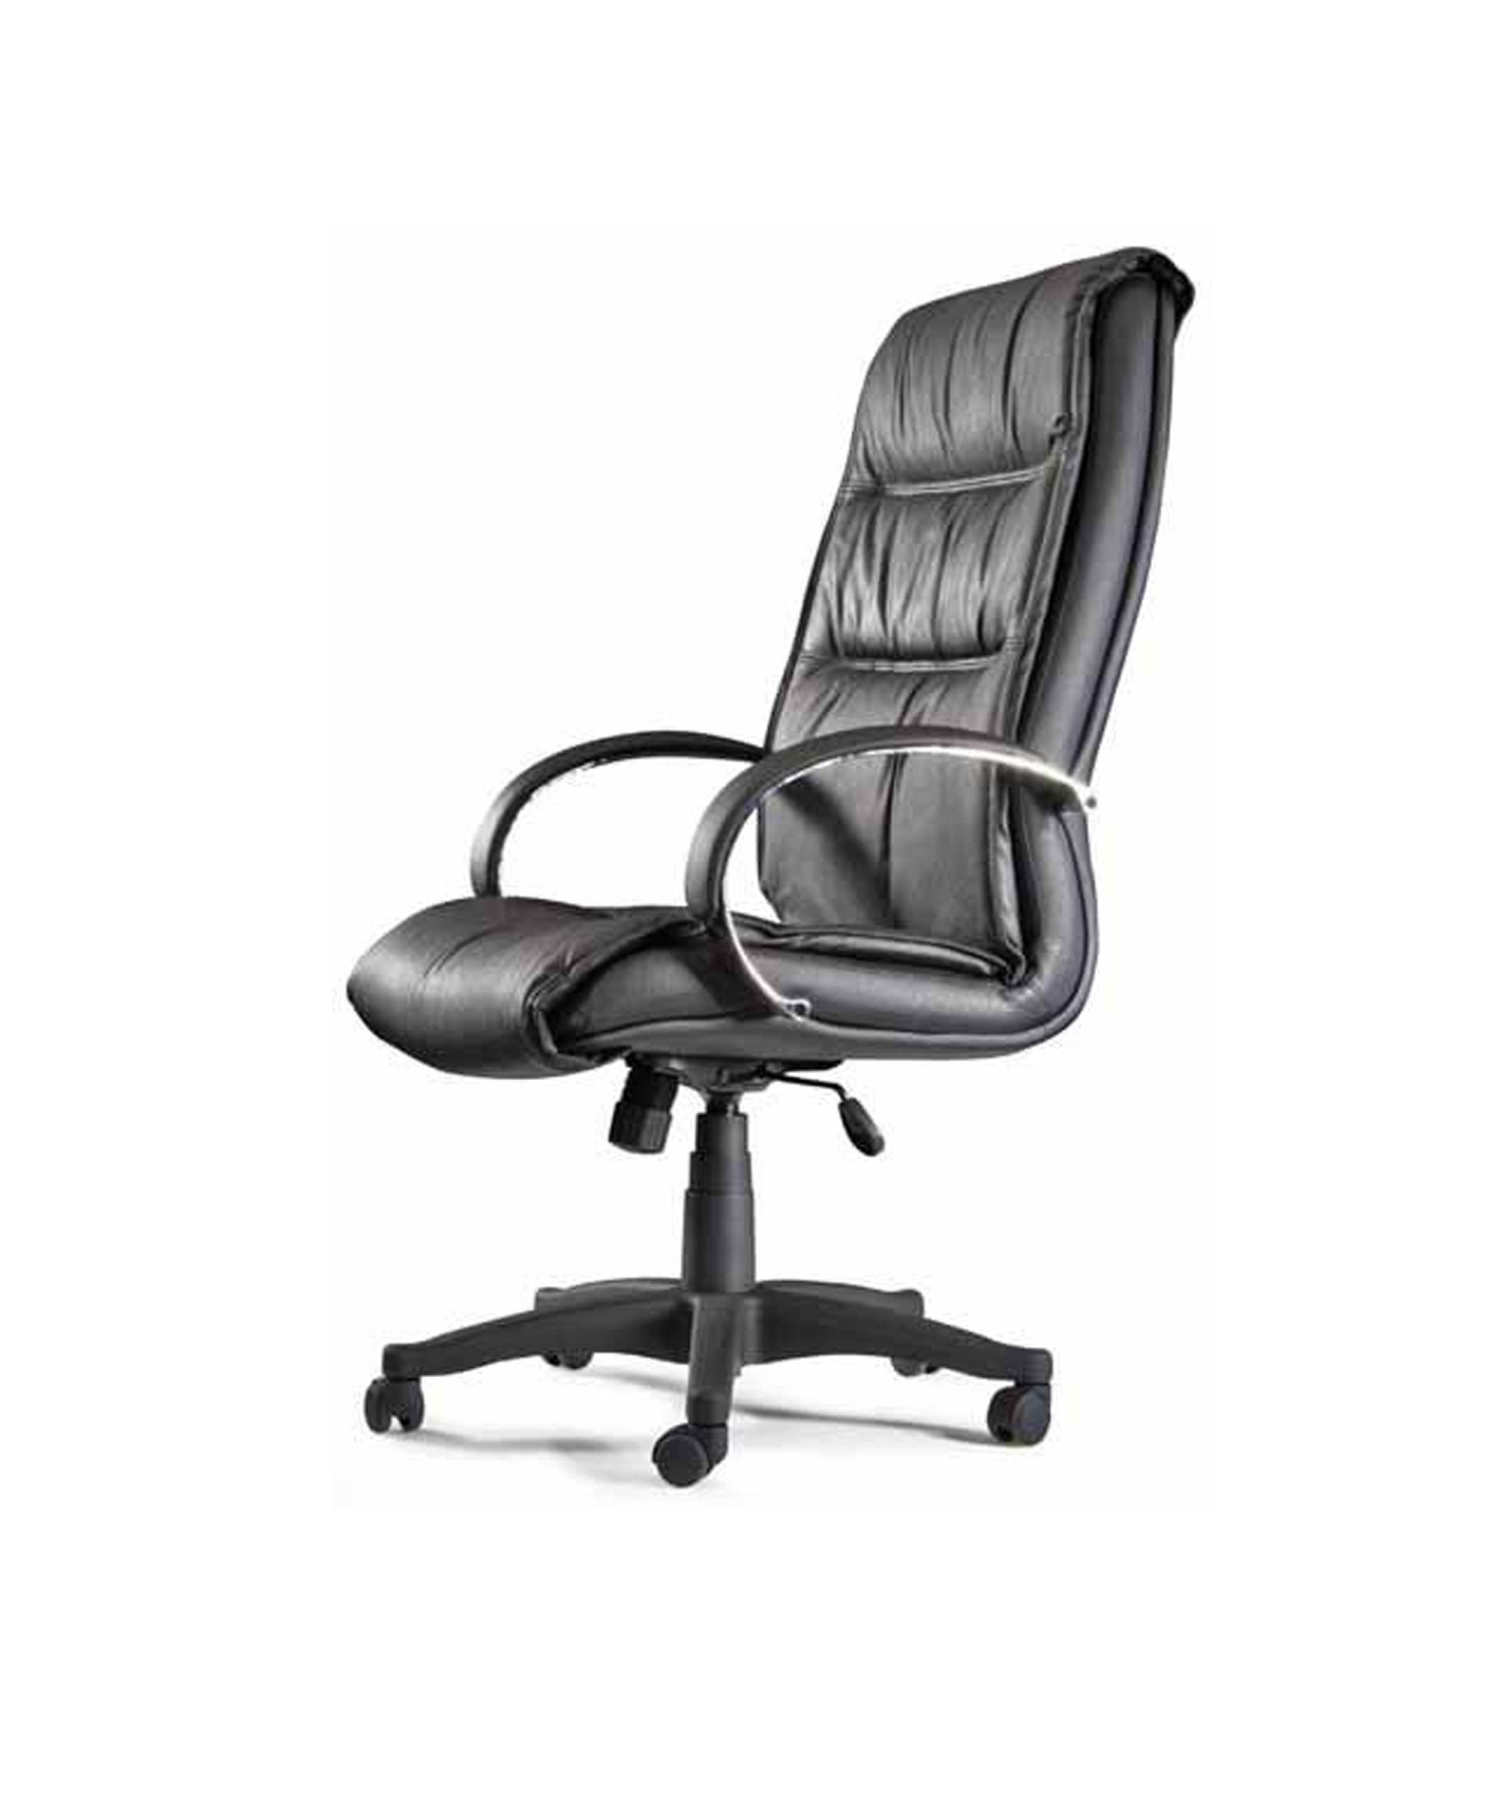 Armchair Ergonomic Steering With Tilting House Mechanism And Dimmable In High Altitude-Upholstered In Similpiel Black Color